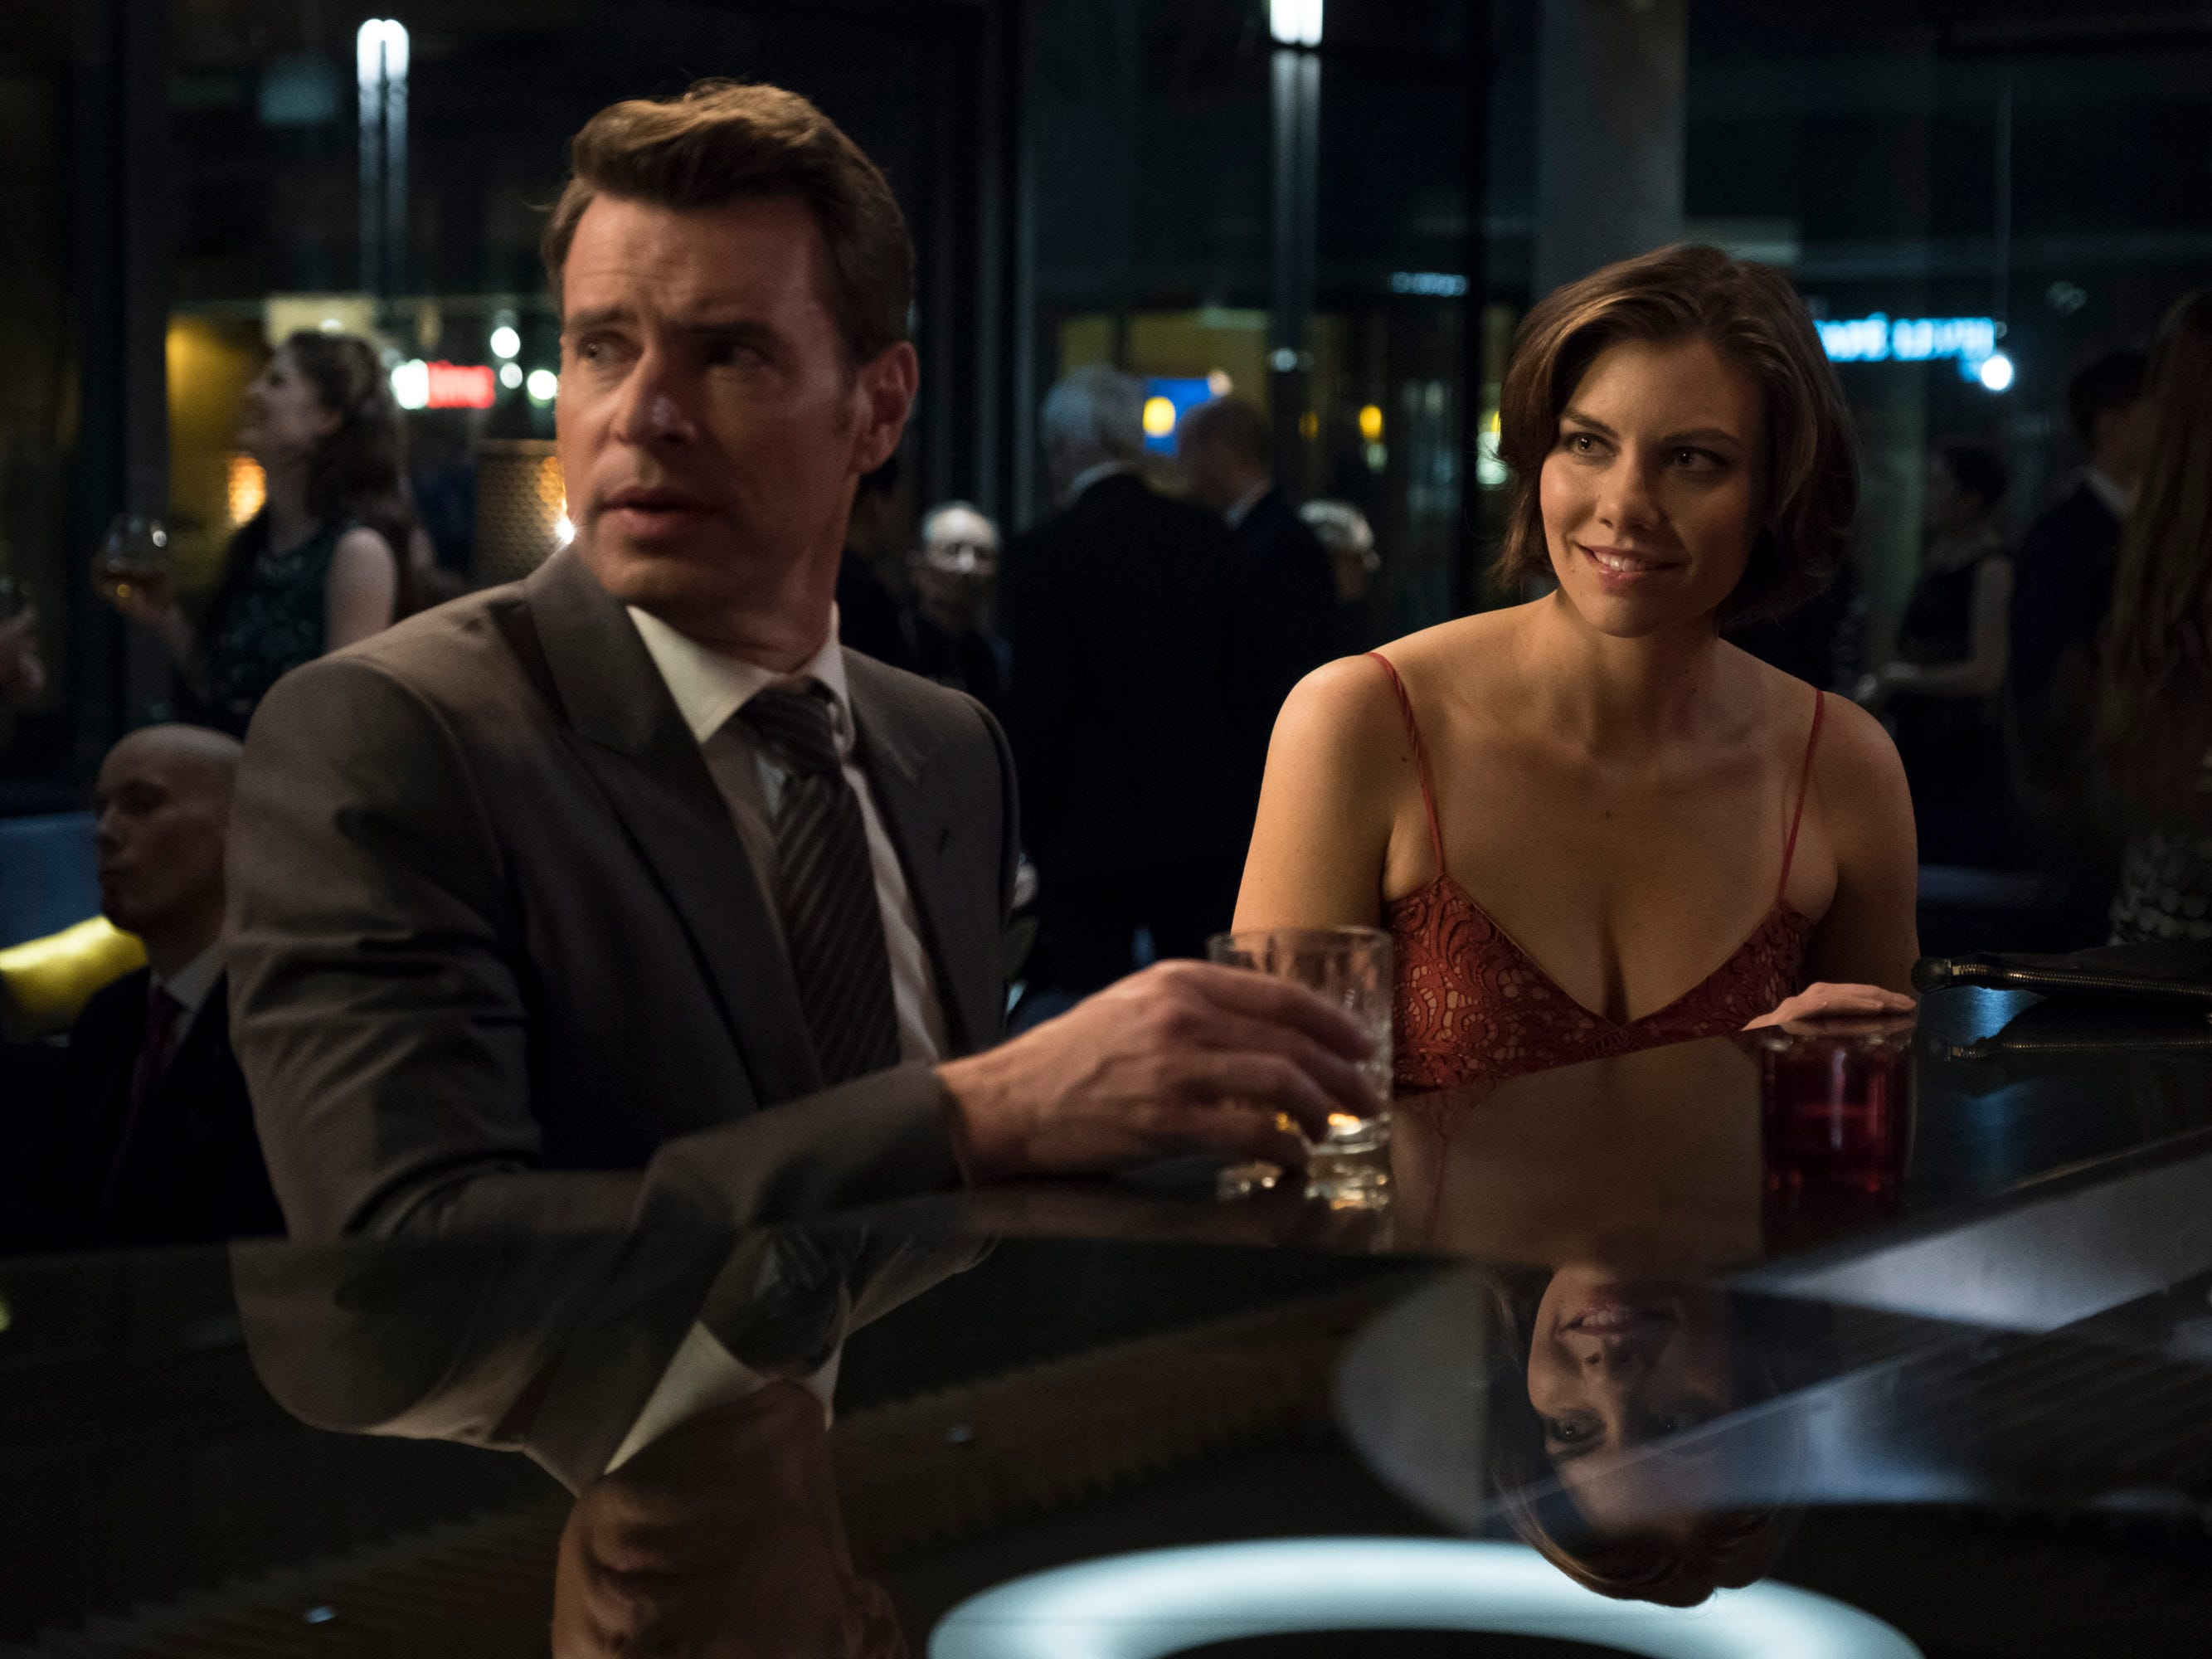 Review: ABC's 'Whiskey Cavalier' is a cutesy, over-the-top clone of 'Castle' and 'Bones'